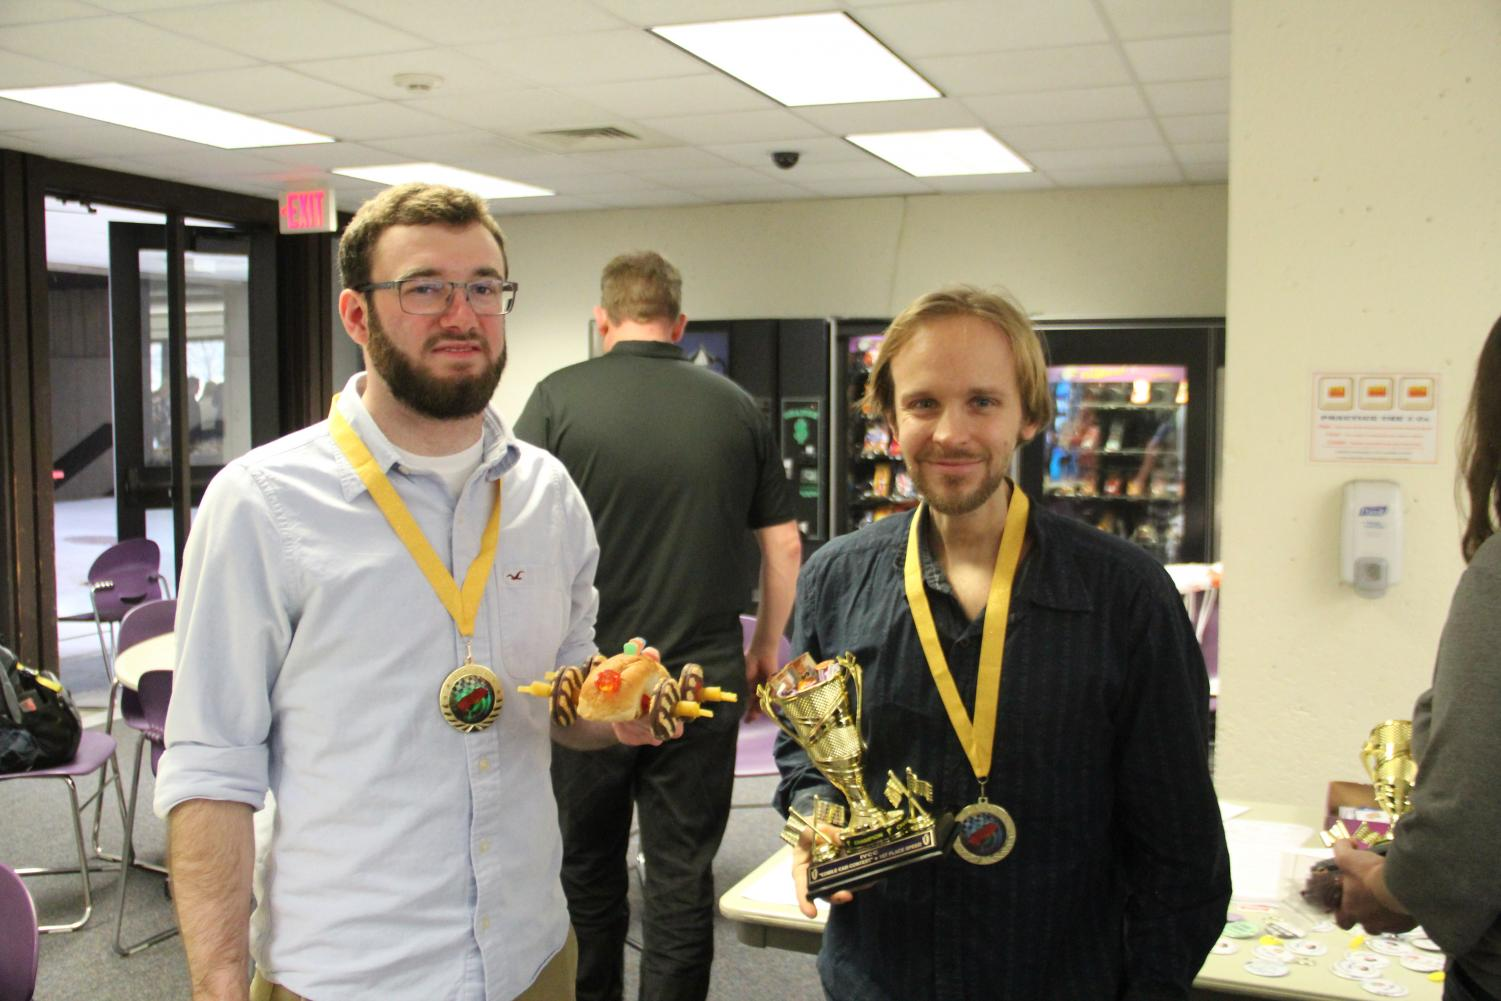 Entirely edible Ben Ross and Lewis Habben (top photo), CAD students, won first place in the speed competition during the Feb. 28 Edible Car Contest in the IVCC cafeteria.